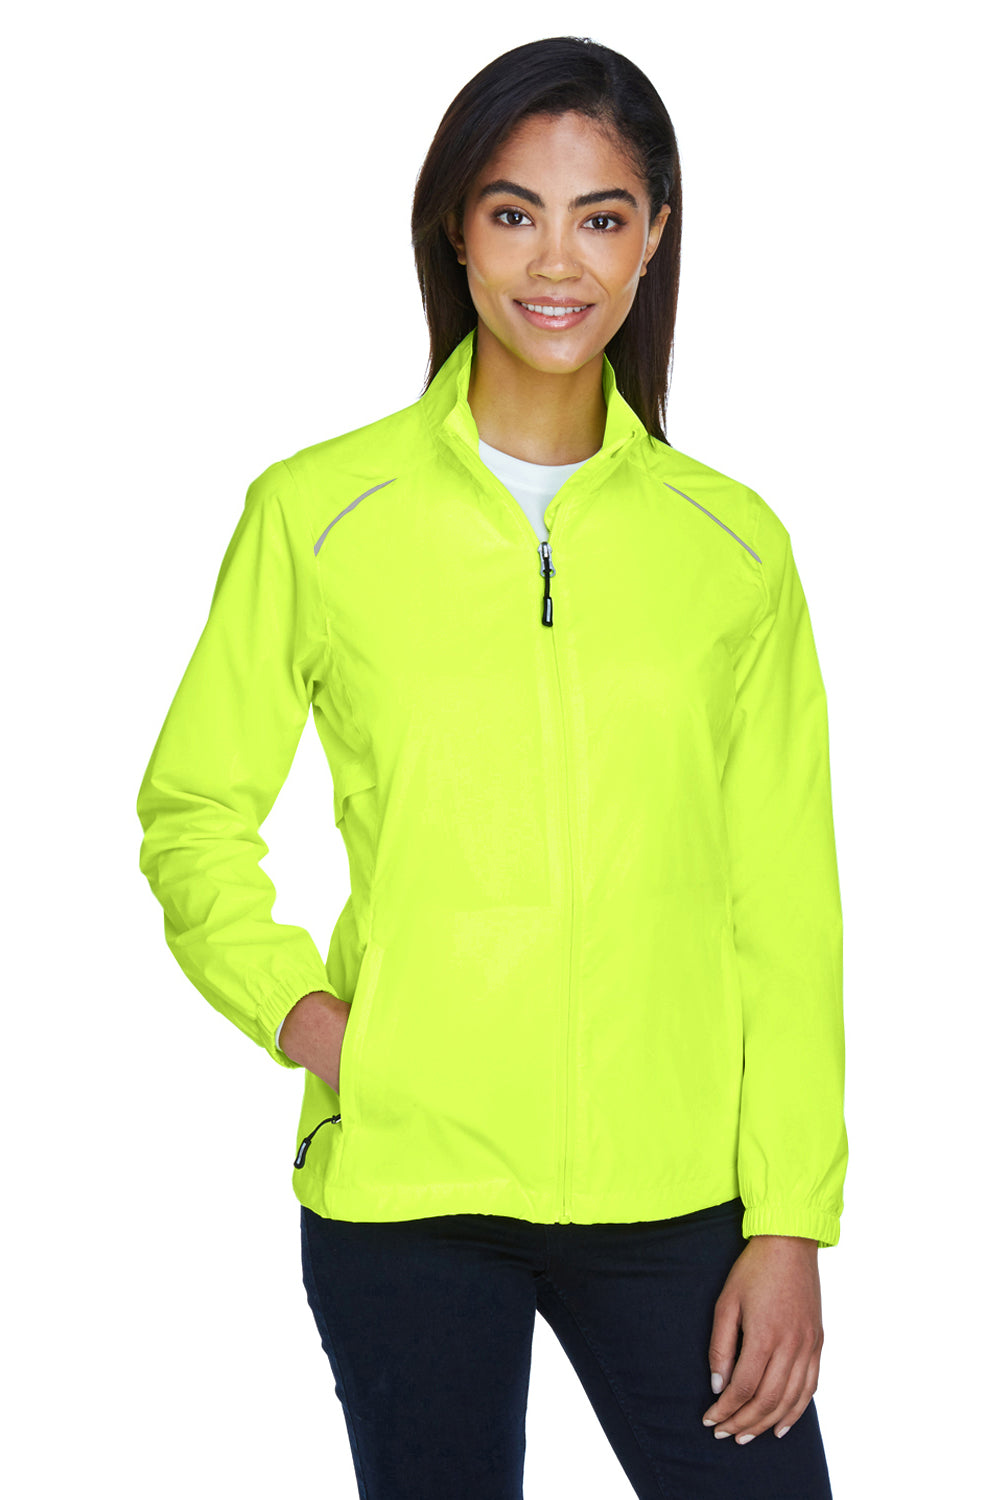 Core 365 78183 Womens Motivate Water Resistant Full Zip Jacket Safety Yellow Front